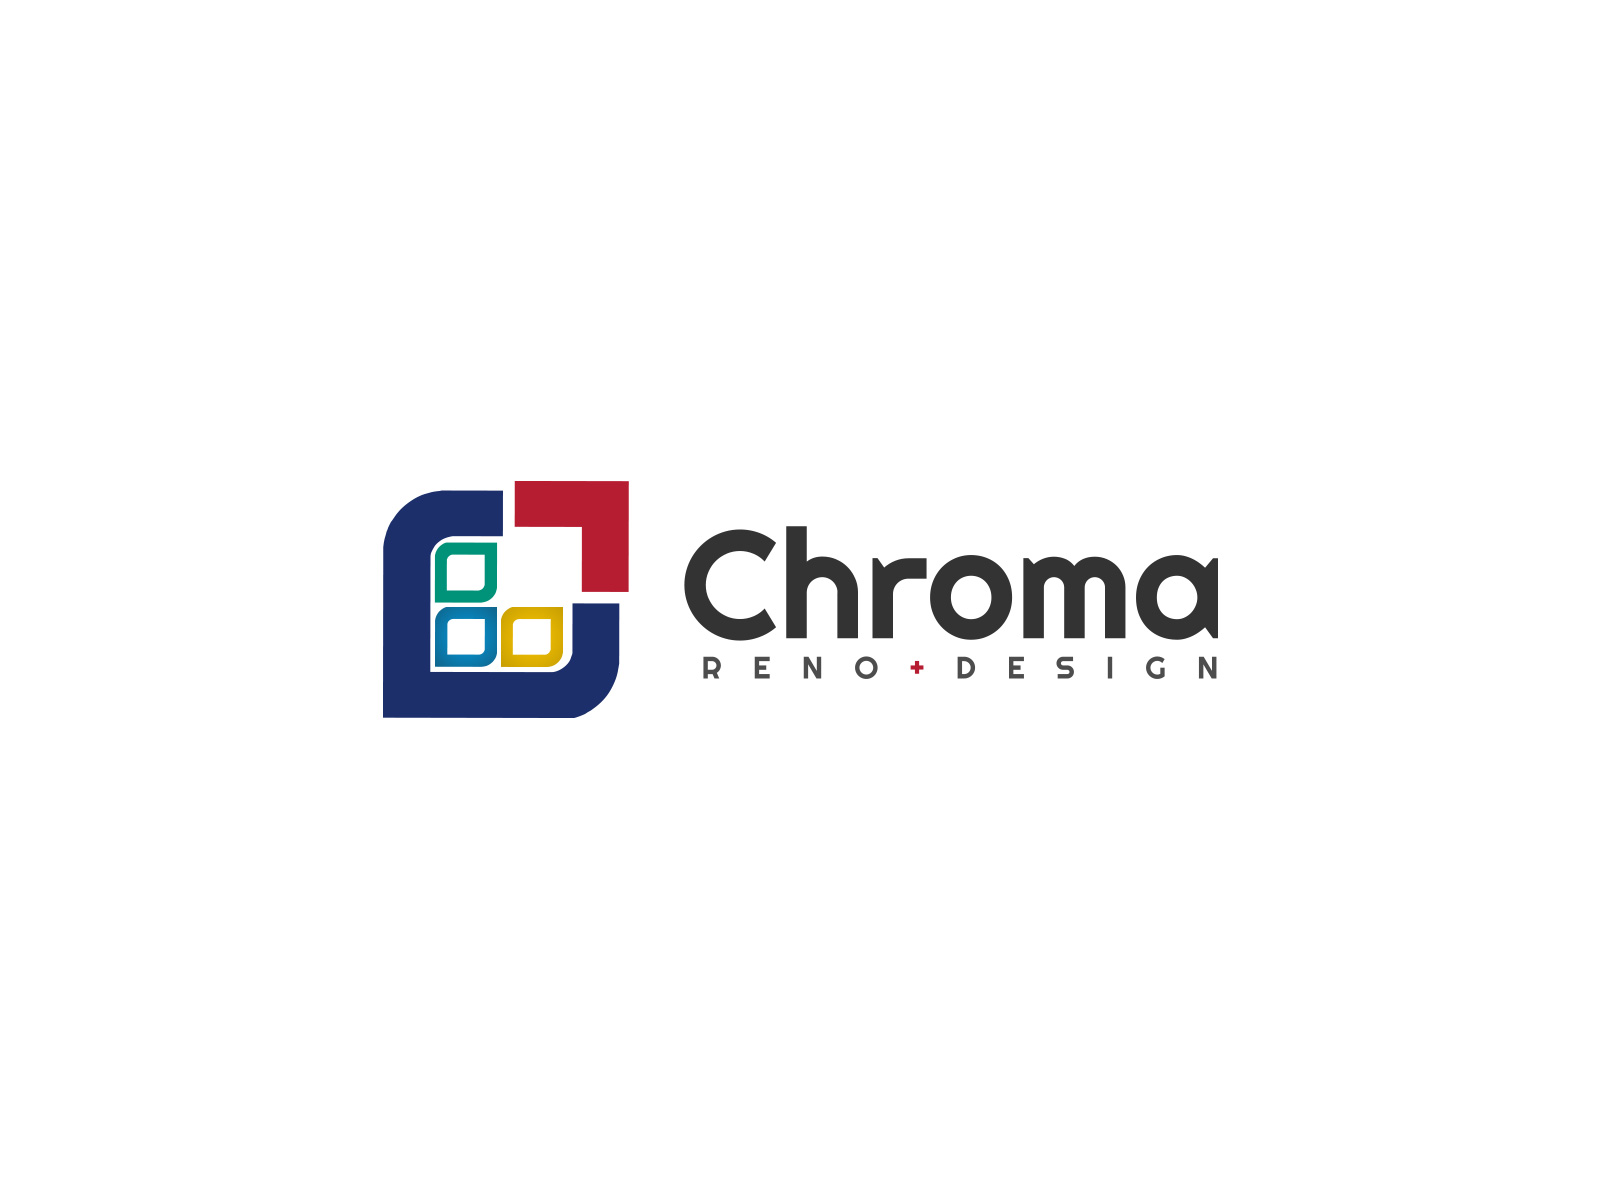 Logo Design by olii - Entry No. 165 in the Logo Design Contest Inspiring Logo Design for Chroma Reno+Design.